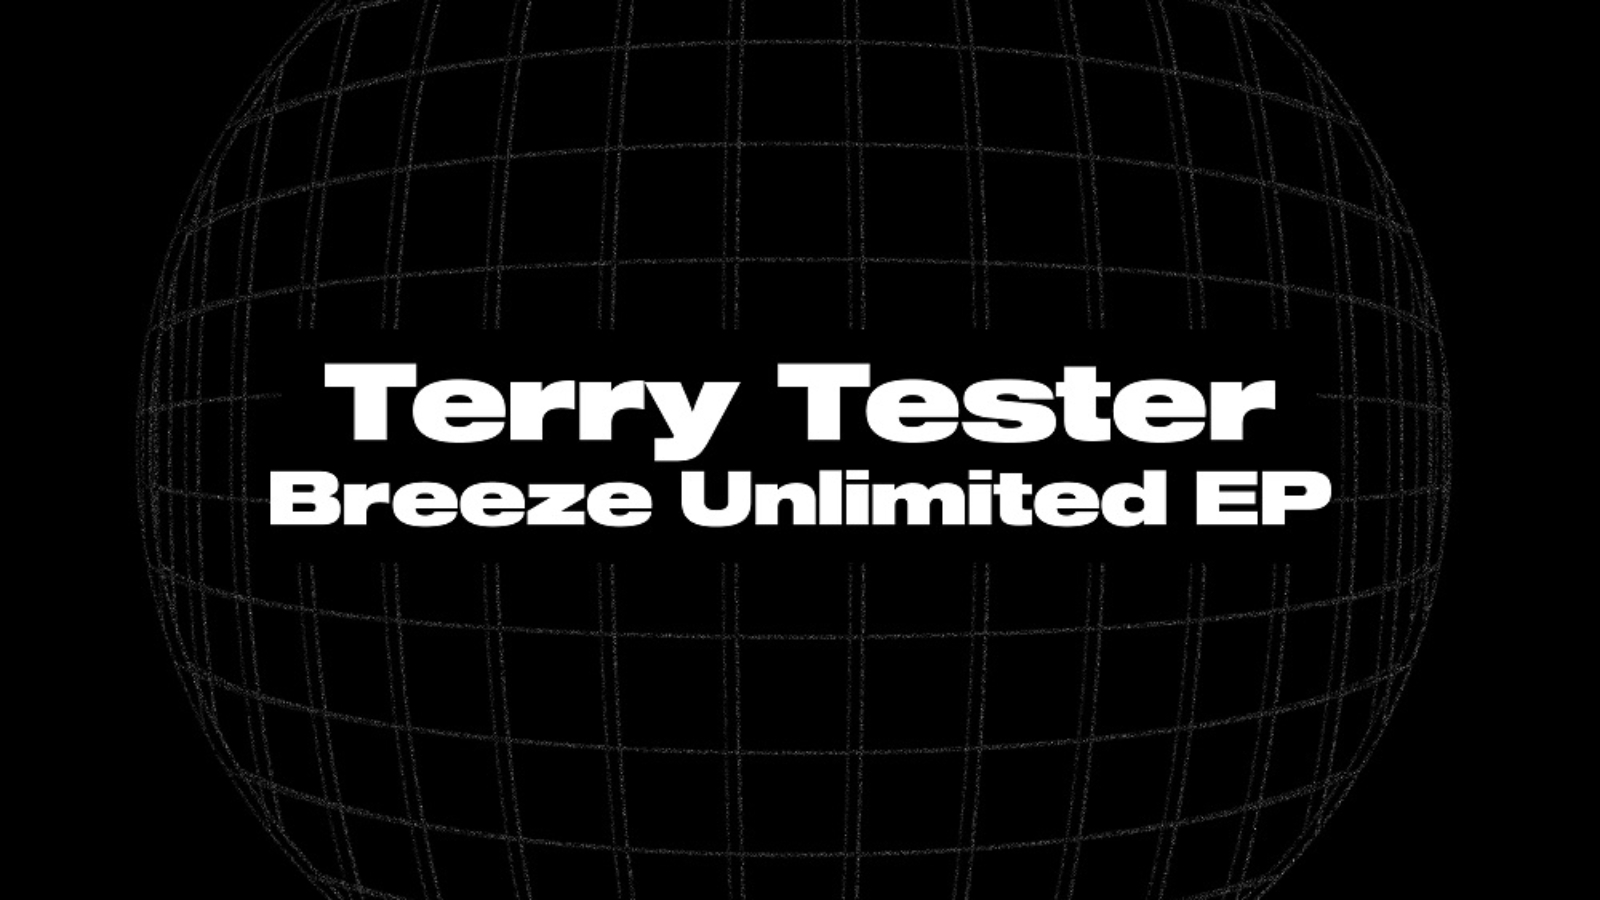 Terry_Tester_Breeze_Unlimited_EP-02